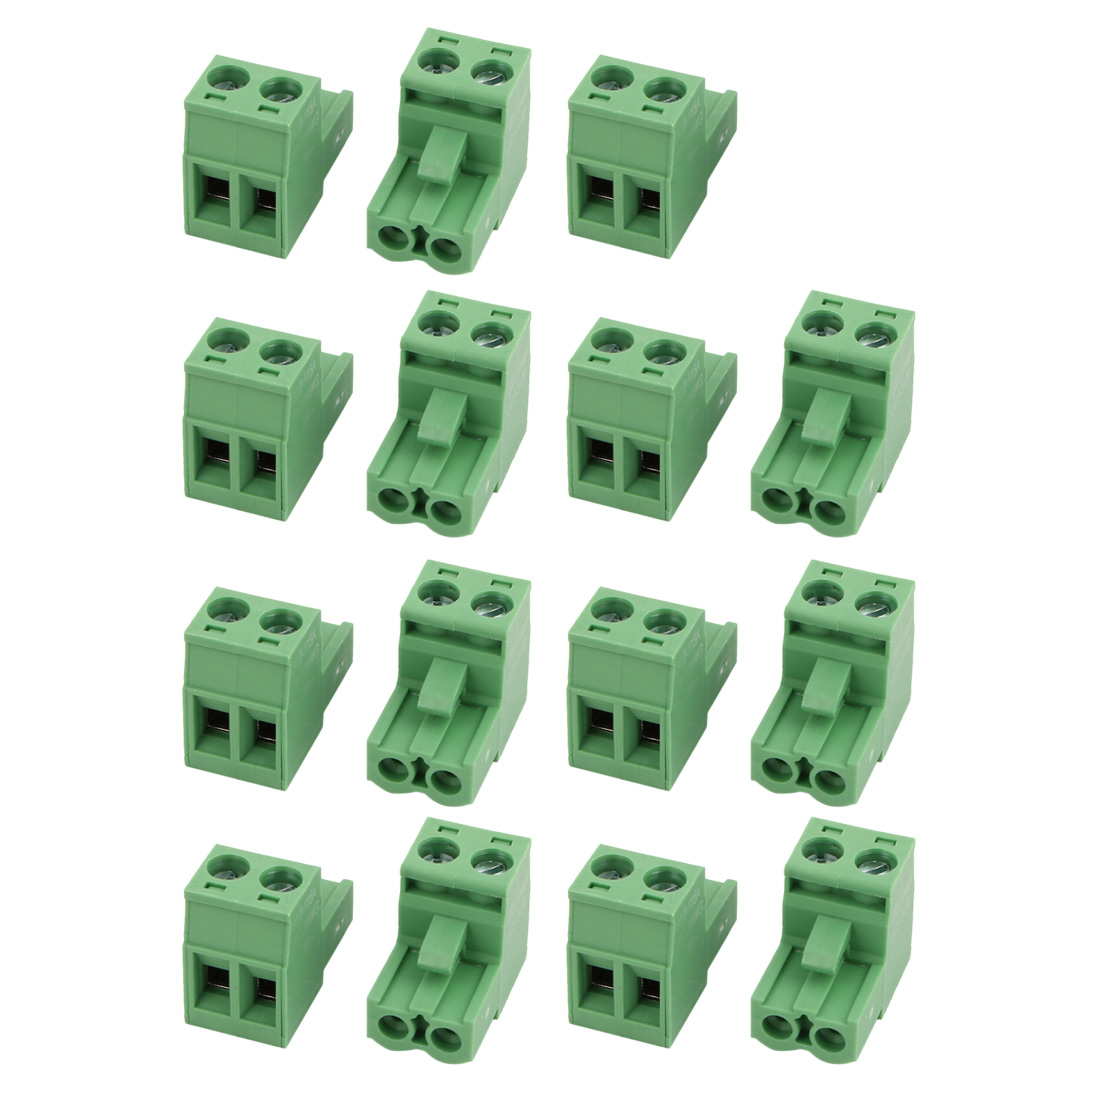 15 Pcs LC1 AC300V 15A 5.08mm Pitch 2P PCB Mount Terminal Block Wire Connector